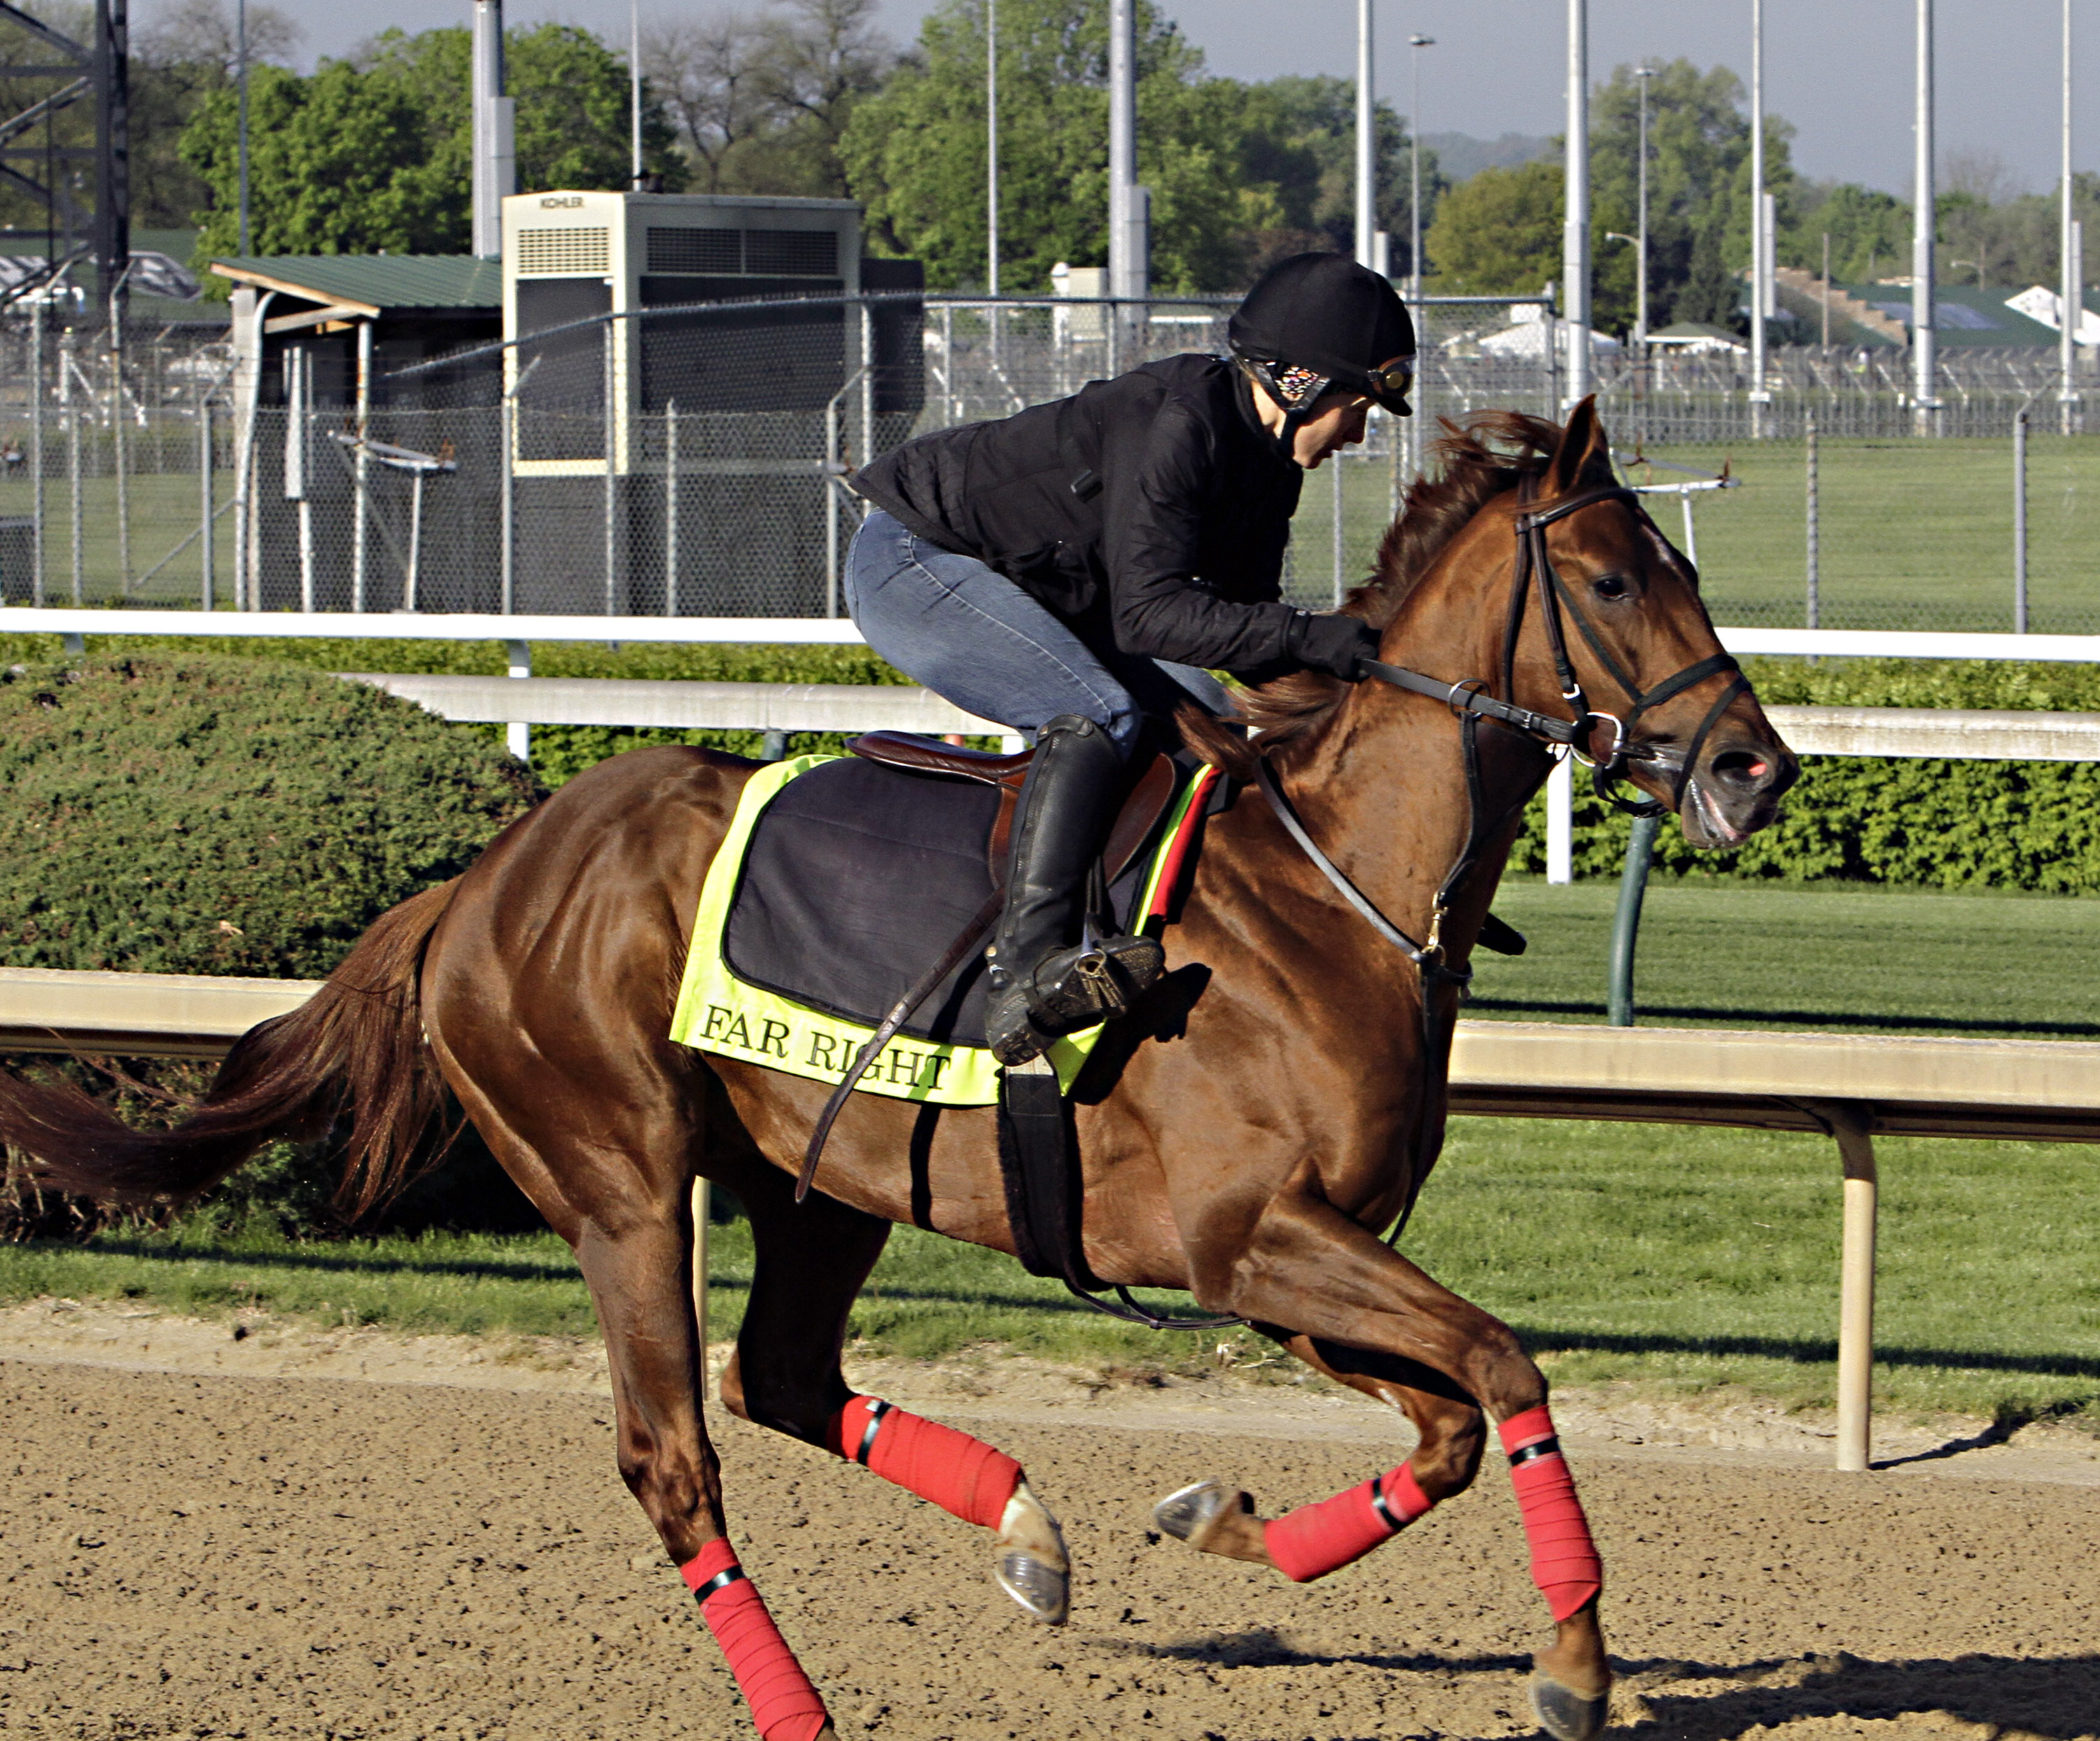 FILE - In this April 28, 2015, file photo, exercise rider Laura Moquett gallops Kentucky Derby hopeful Far Right at Churchill Downs in Louisville, Ky. Training Ron Moquett wasn't born into the horse racing business, but he's risen through the ranks to bec